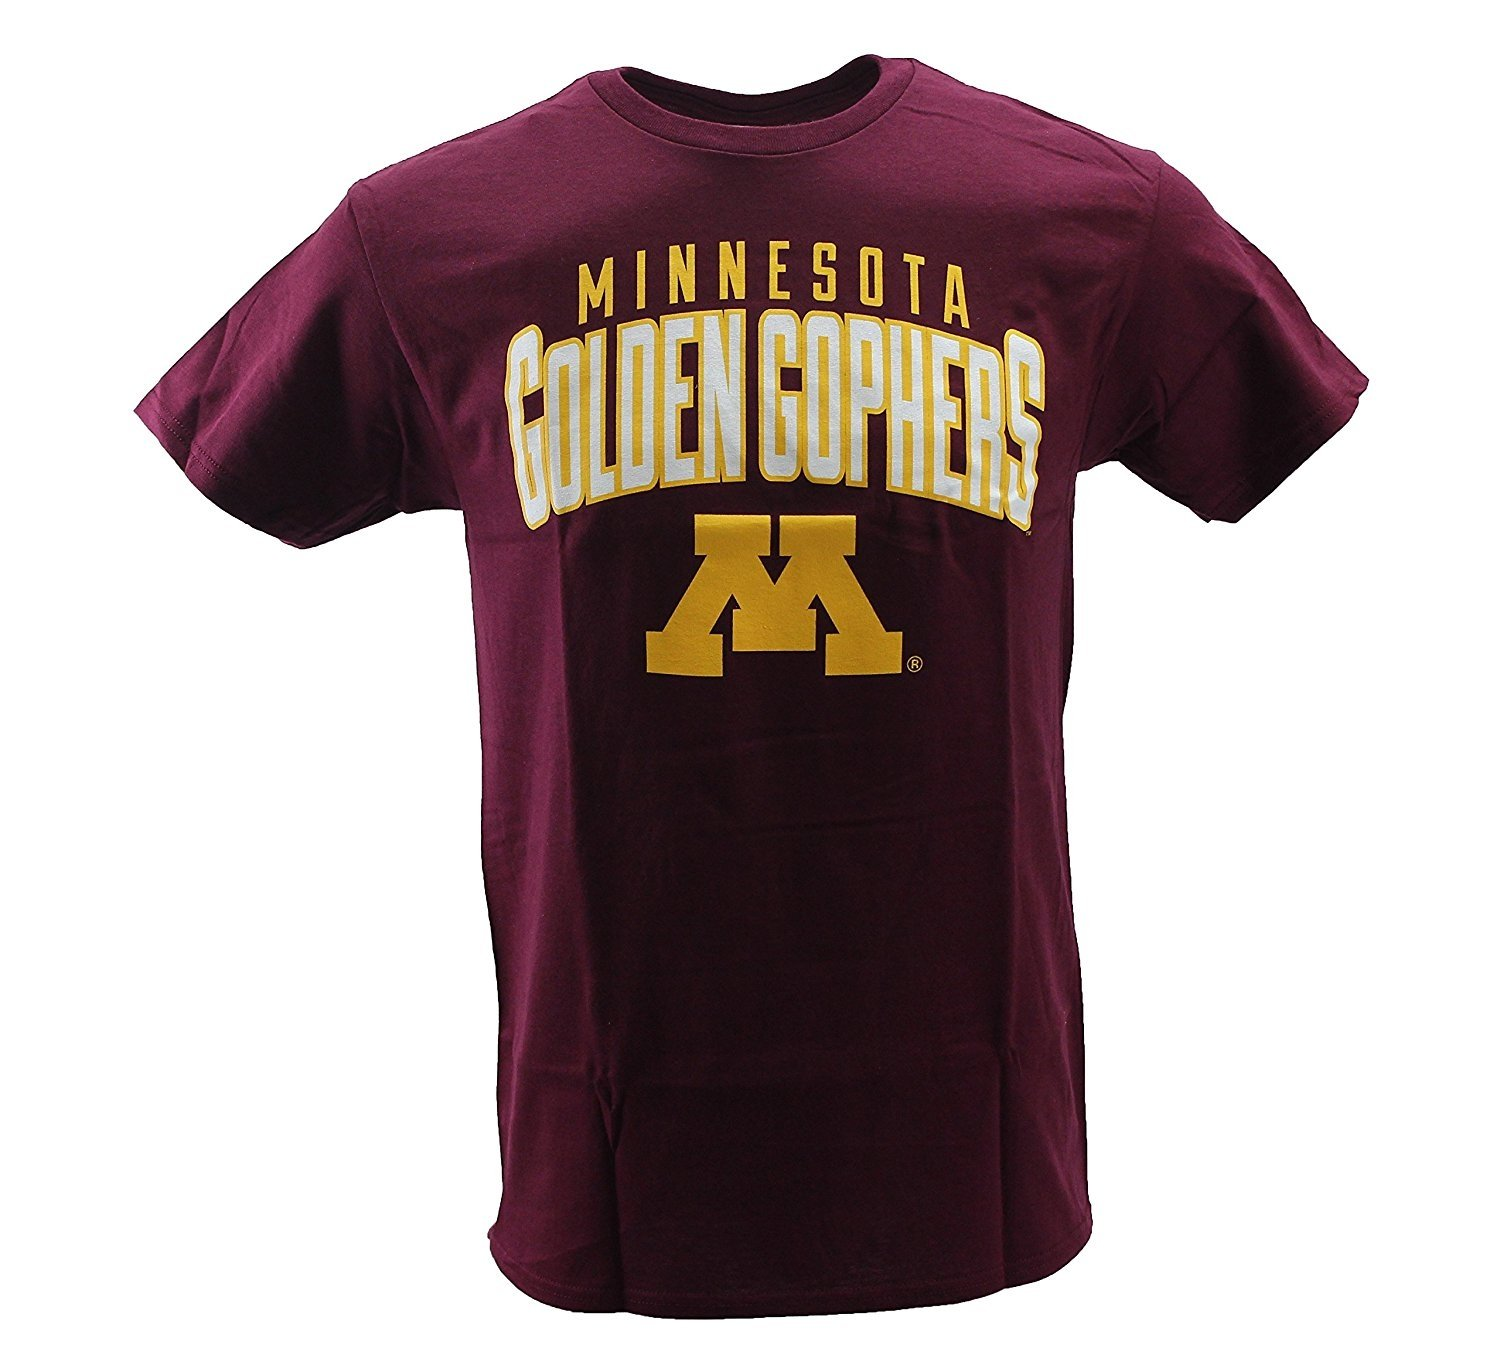 4th and 1 Men's Minnesota Golden Gophers T Shirt Maroon